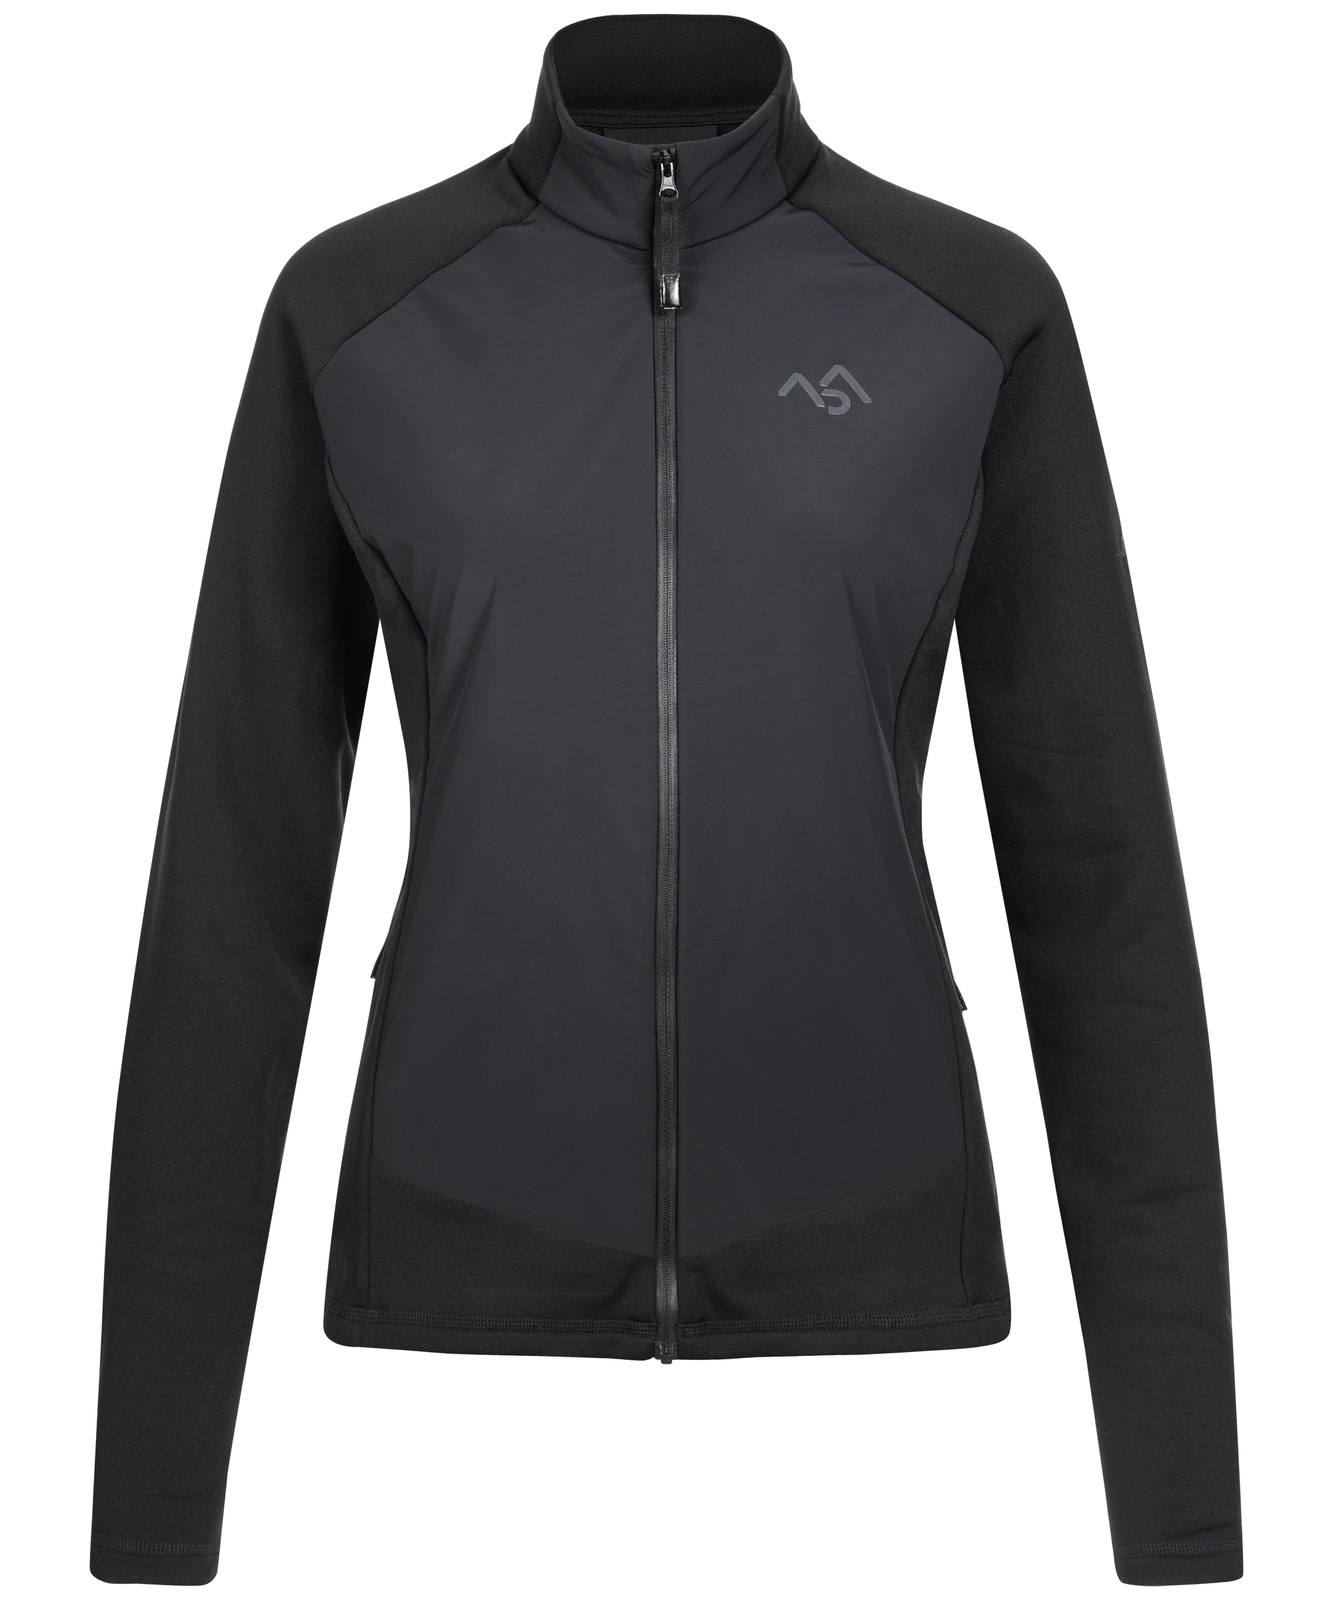 WX5 Fleece Jacket